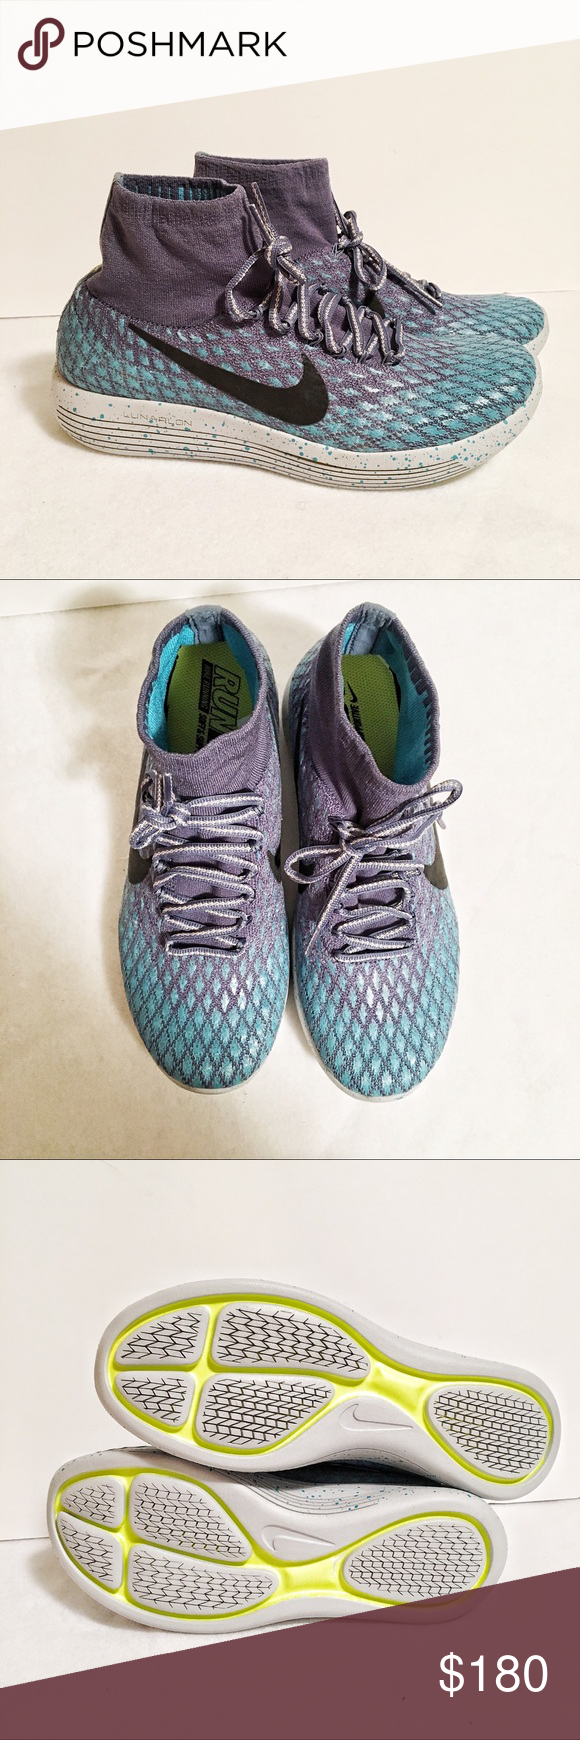 online retailer b1edd a759a Nike Lunarepic Flyknit shoe NWT! Water-repellent mid-rise ...